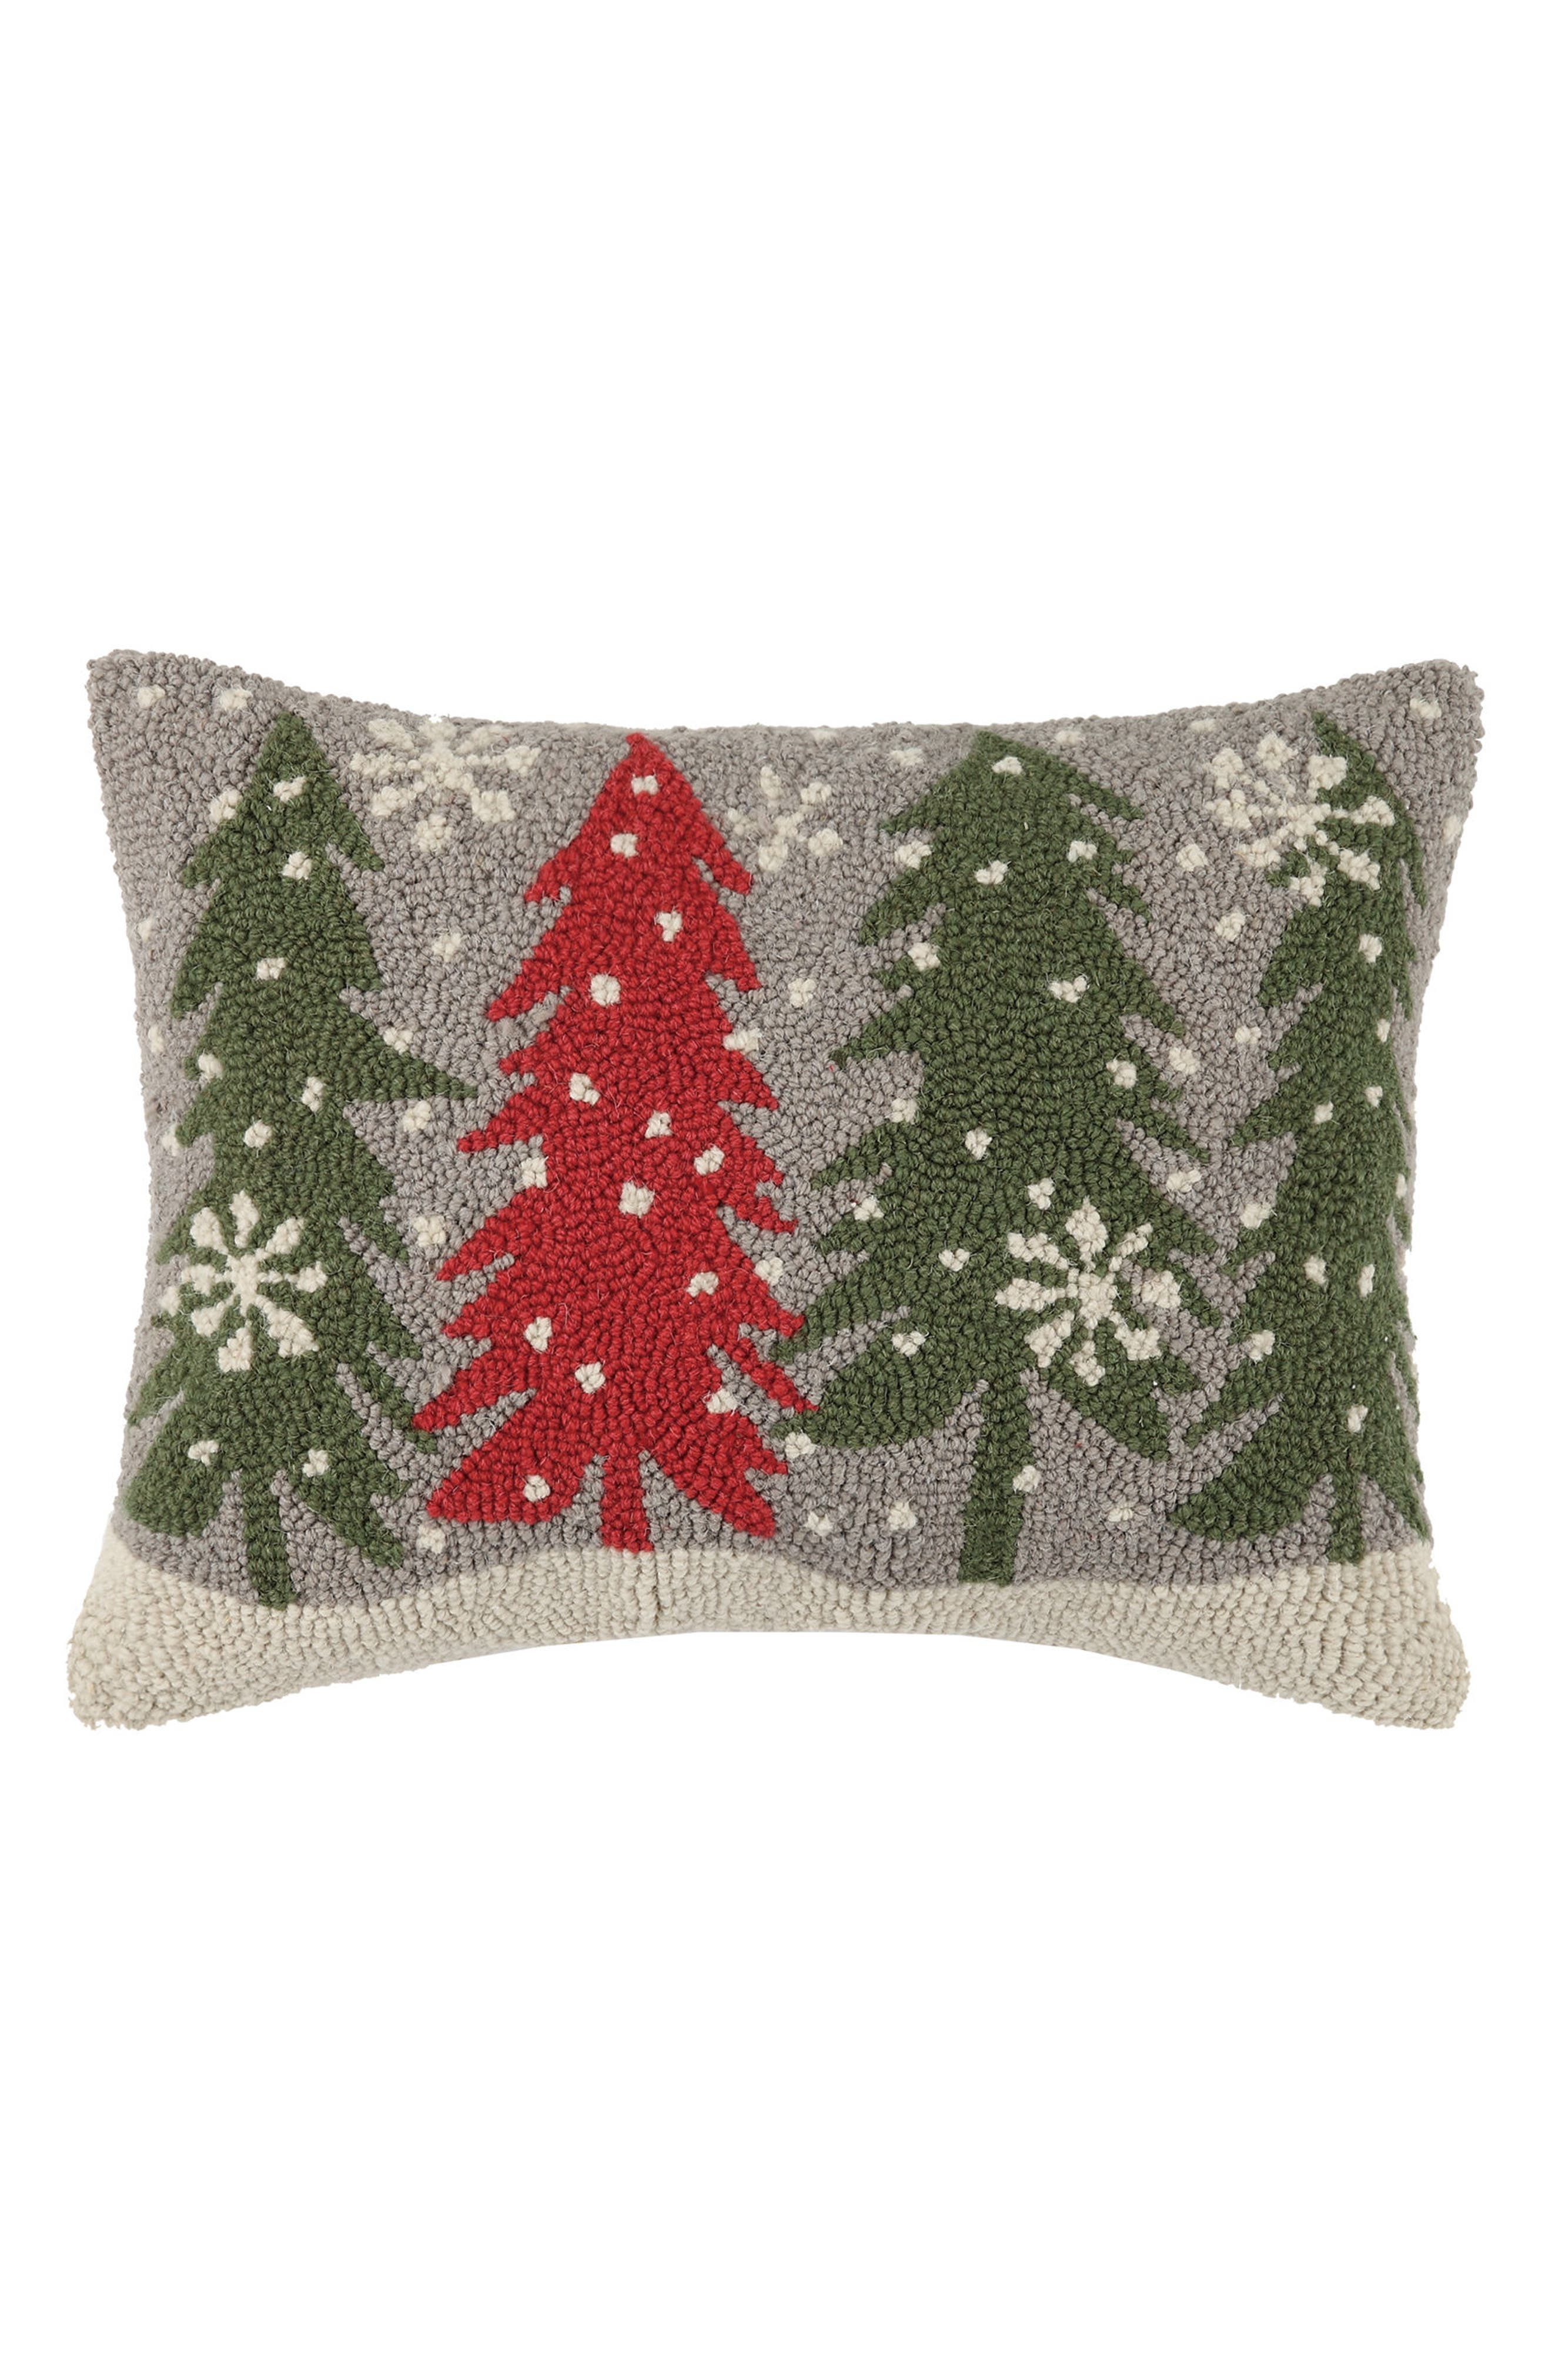 Trees with Snowflakes Hooked Accent Pillow,                             Main thumbnail 1, color,                             Grey